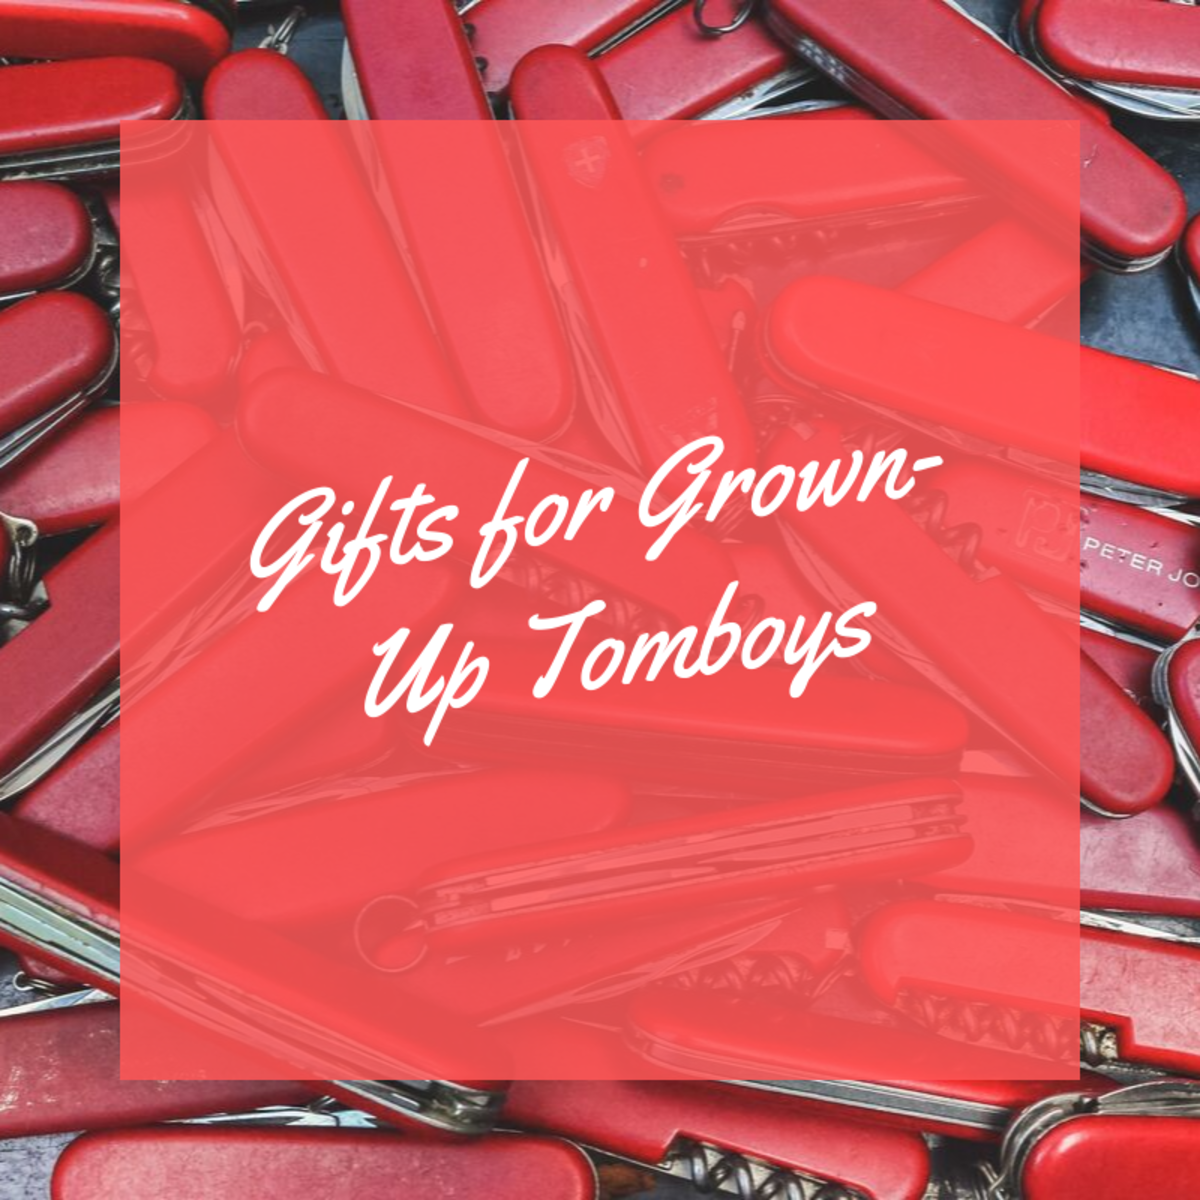 These gifts are perfect for the tomboys in your life!